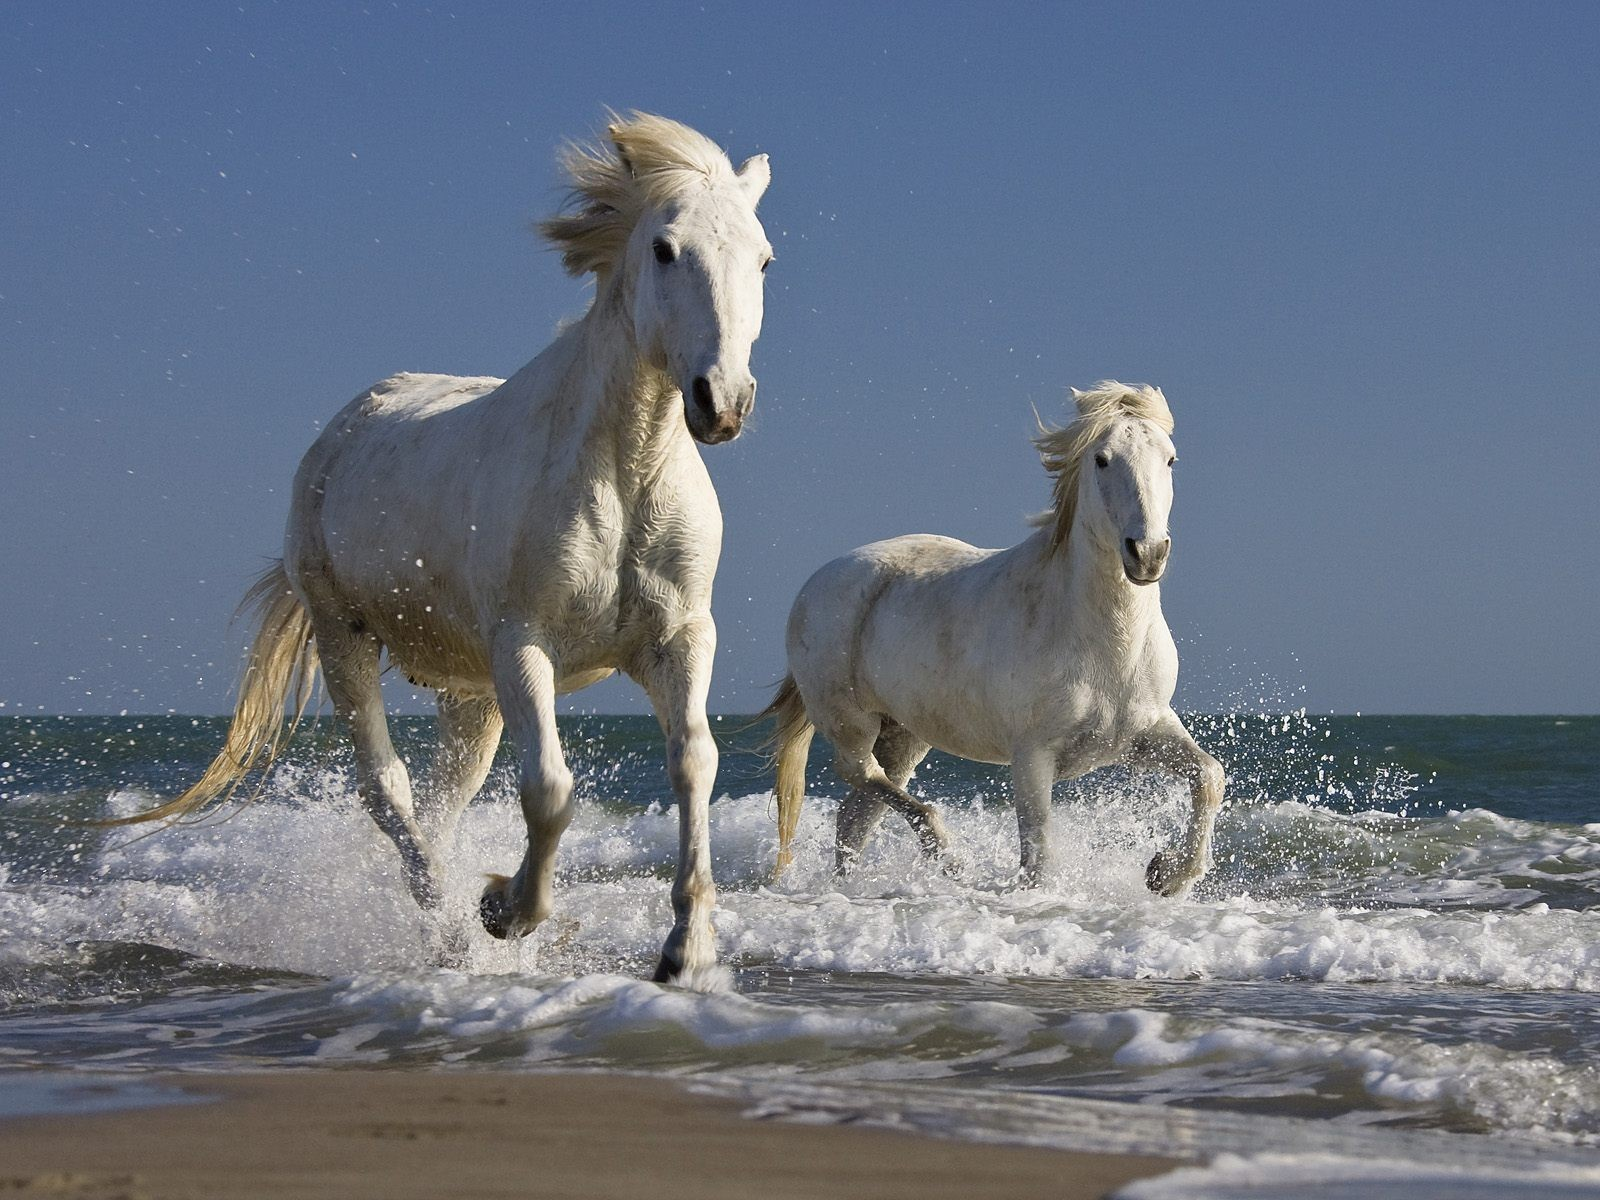 Animals ocean waves Horses